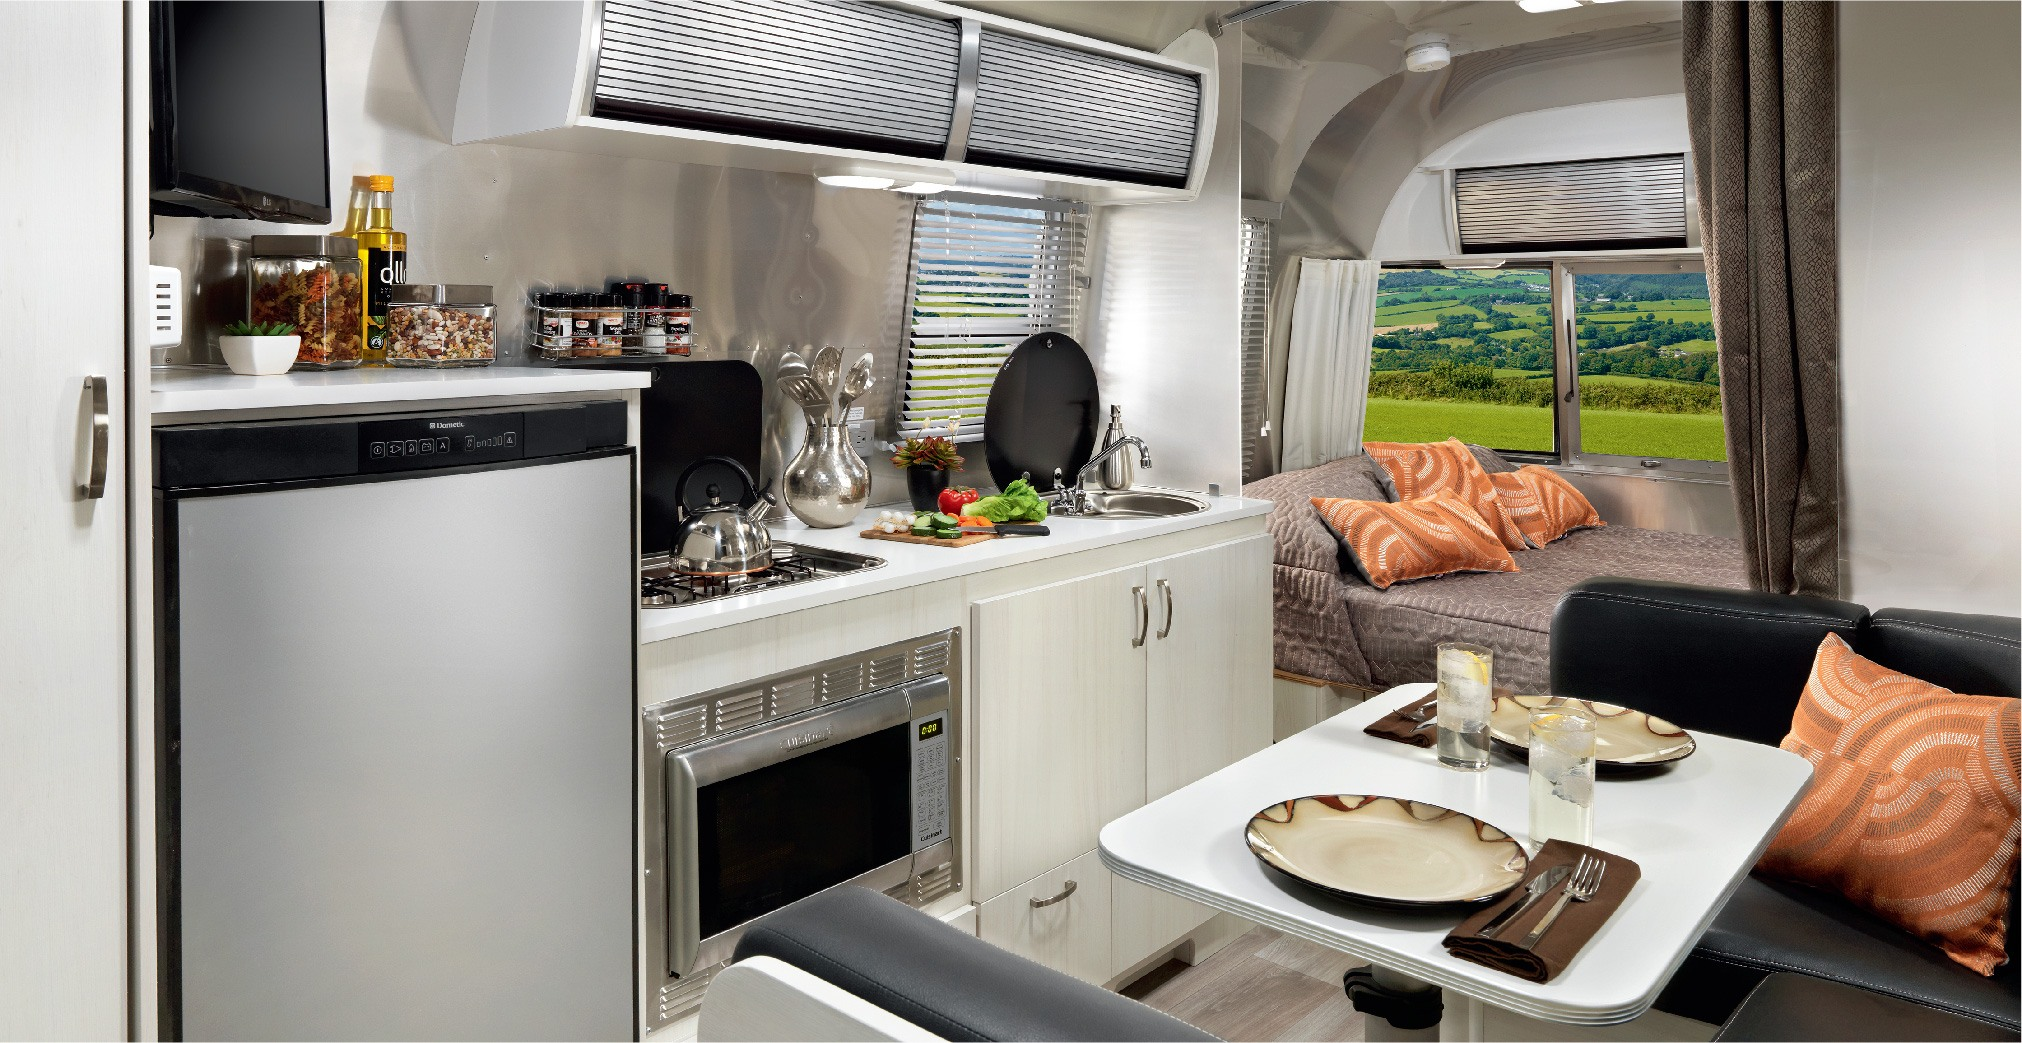 Airstream The Sport trailer inside